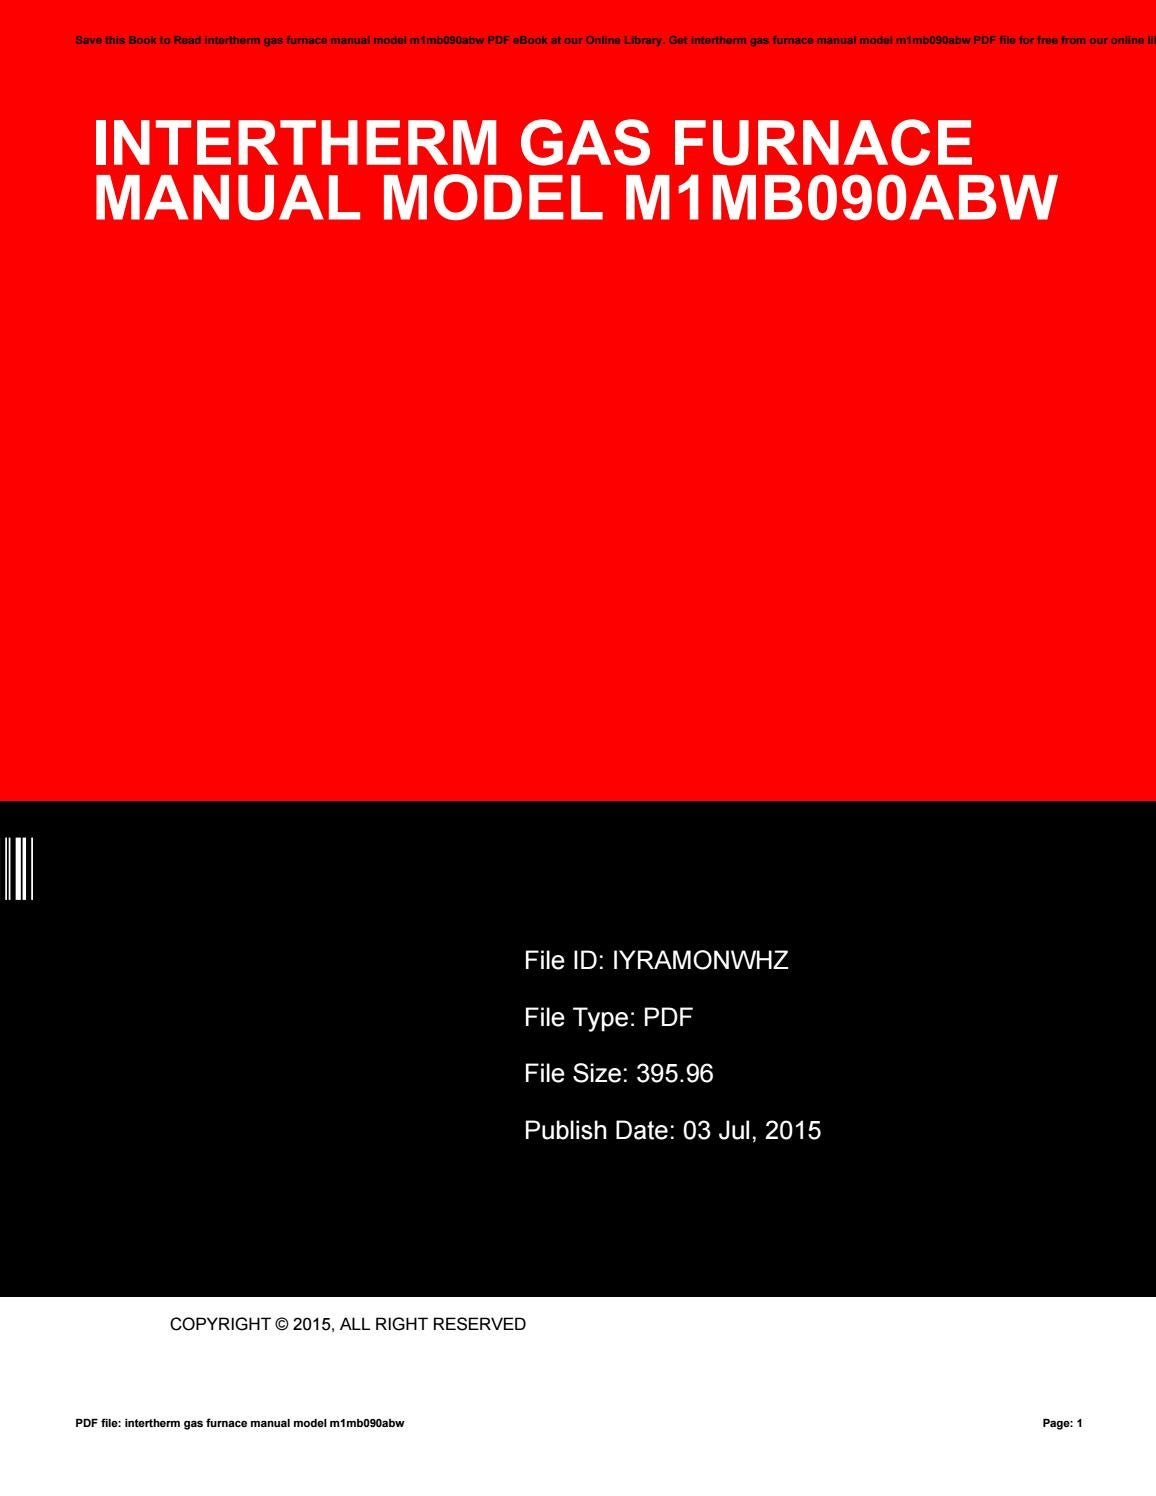 hight resolution of intertherm gas furnace manual model m1mb090abw by juanitanakamura3275 issuu